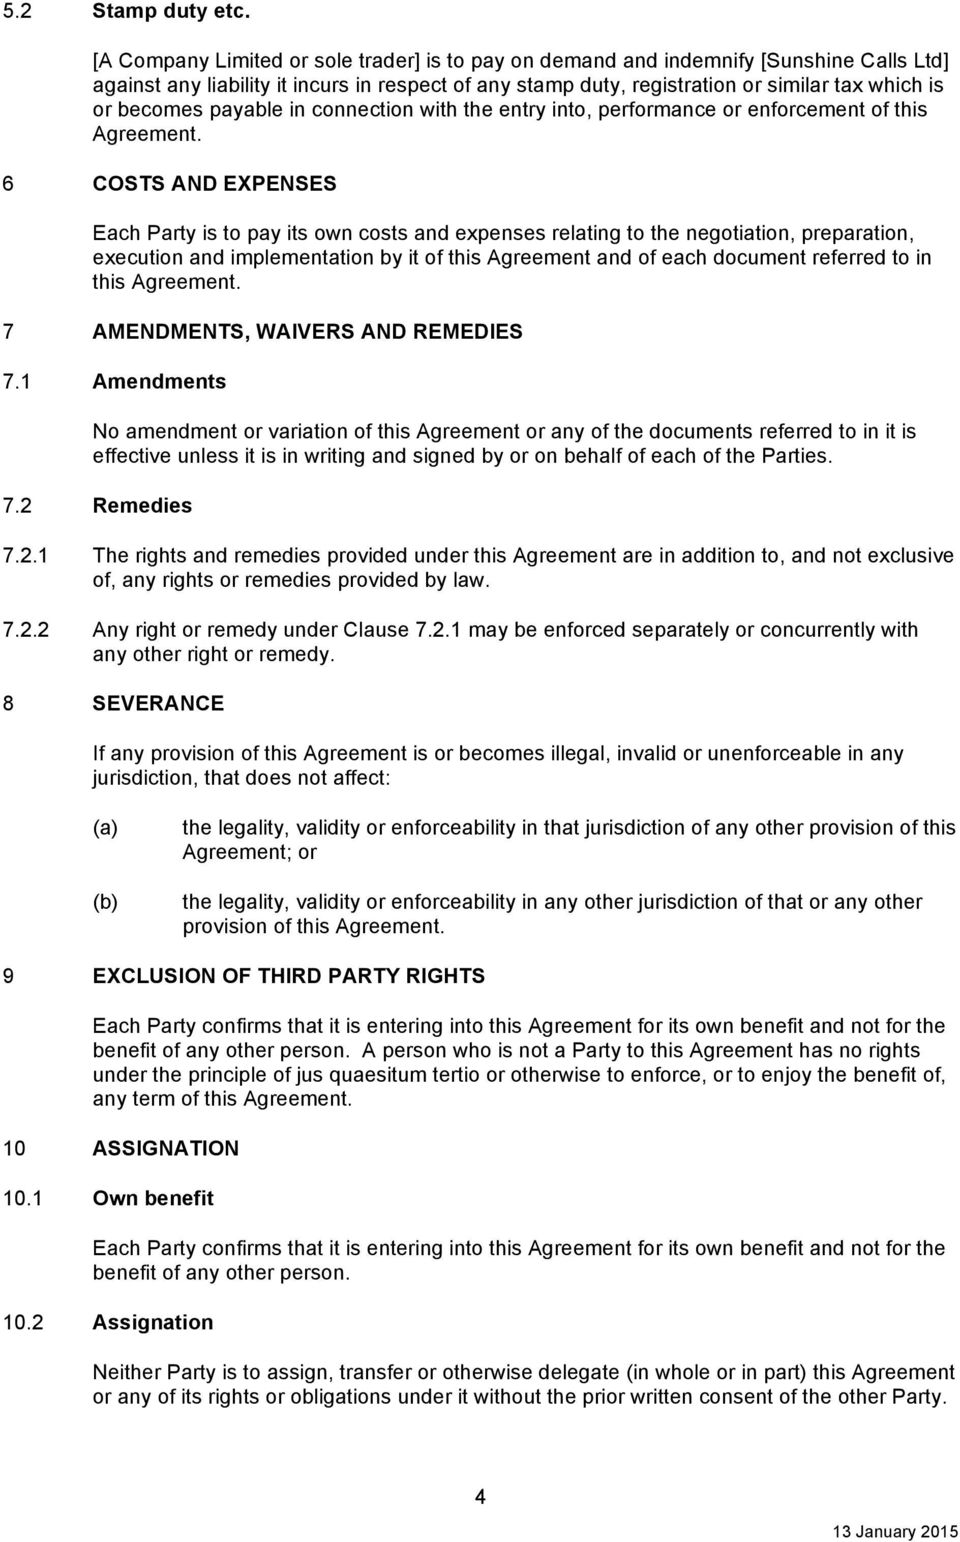 payable in connection with the entry into, performance or enforcement of this Agreement.